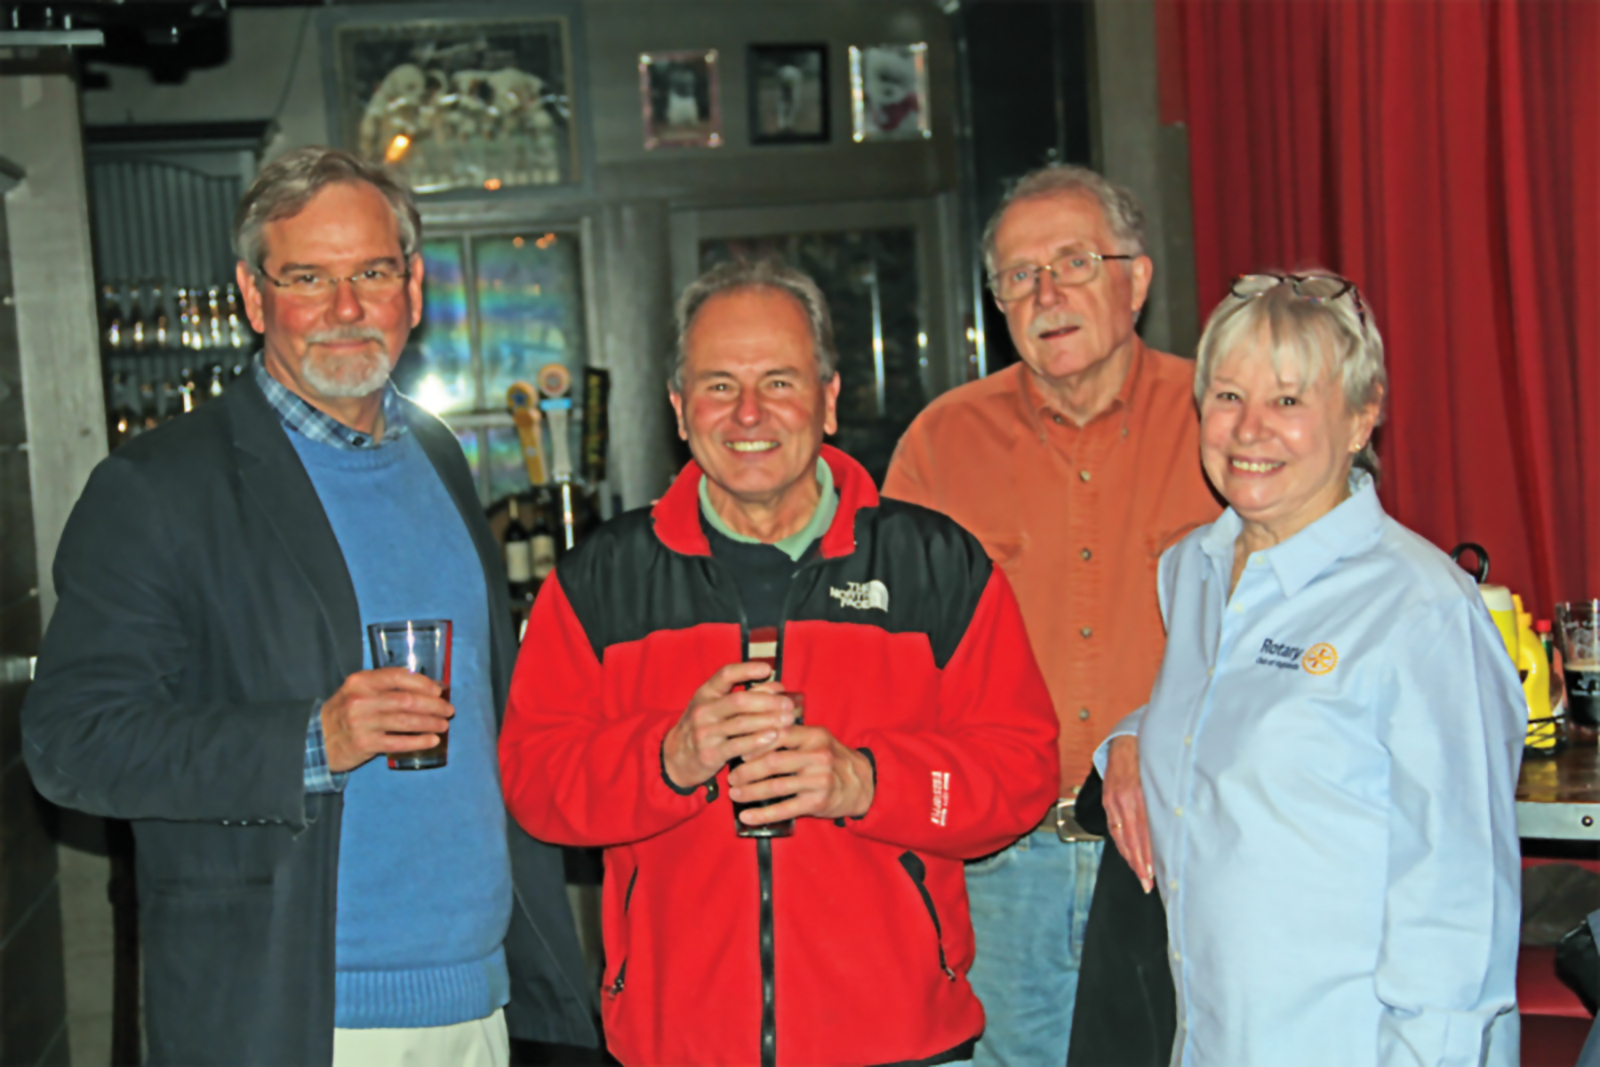 Rotary_B-Day_Party_highlands_nc